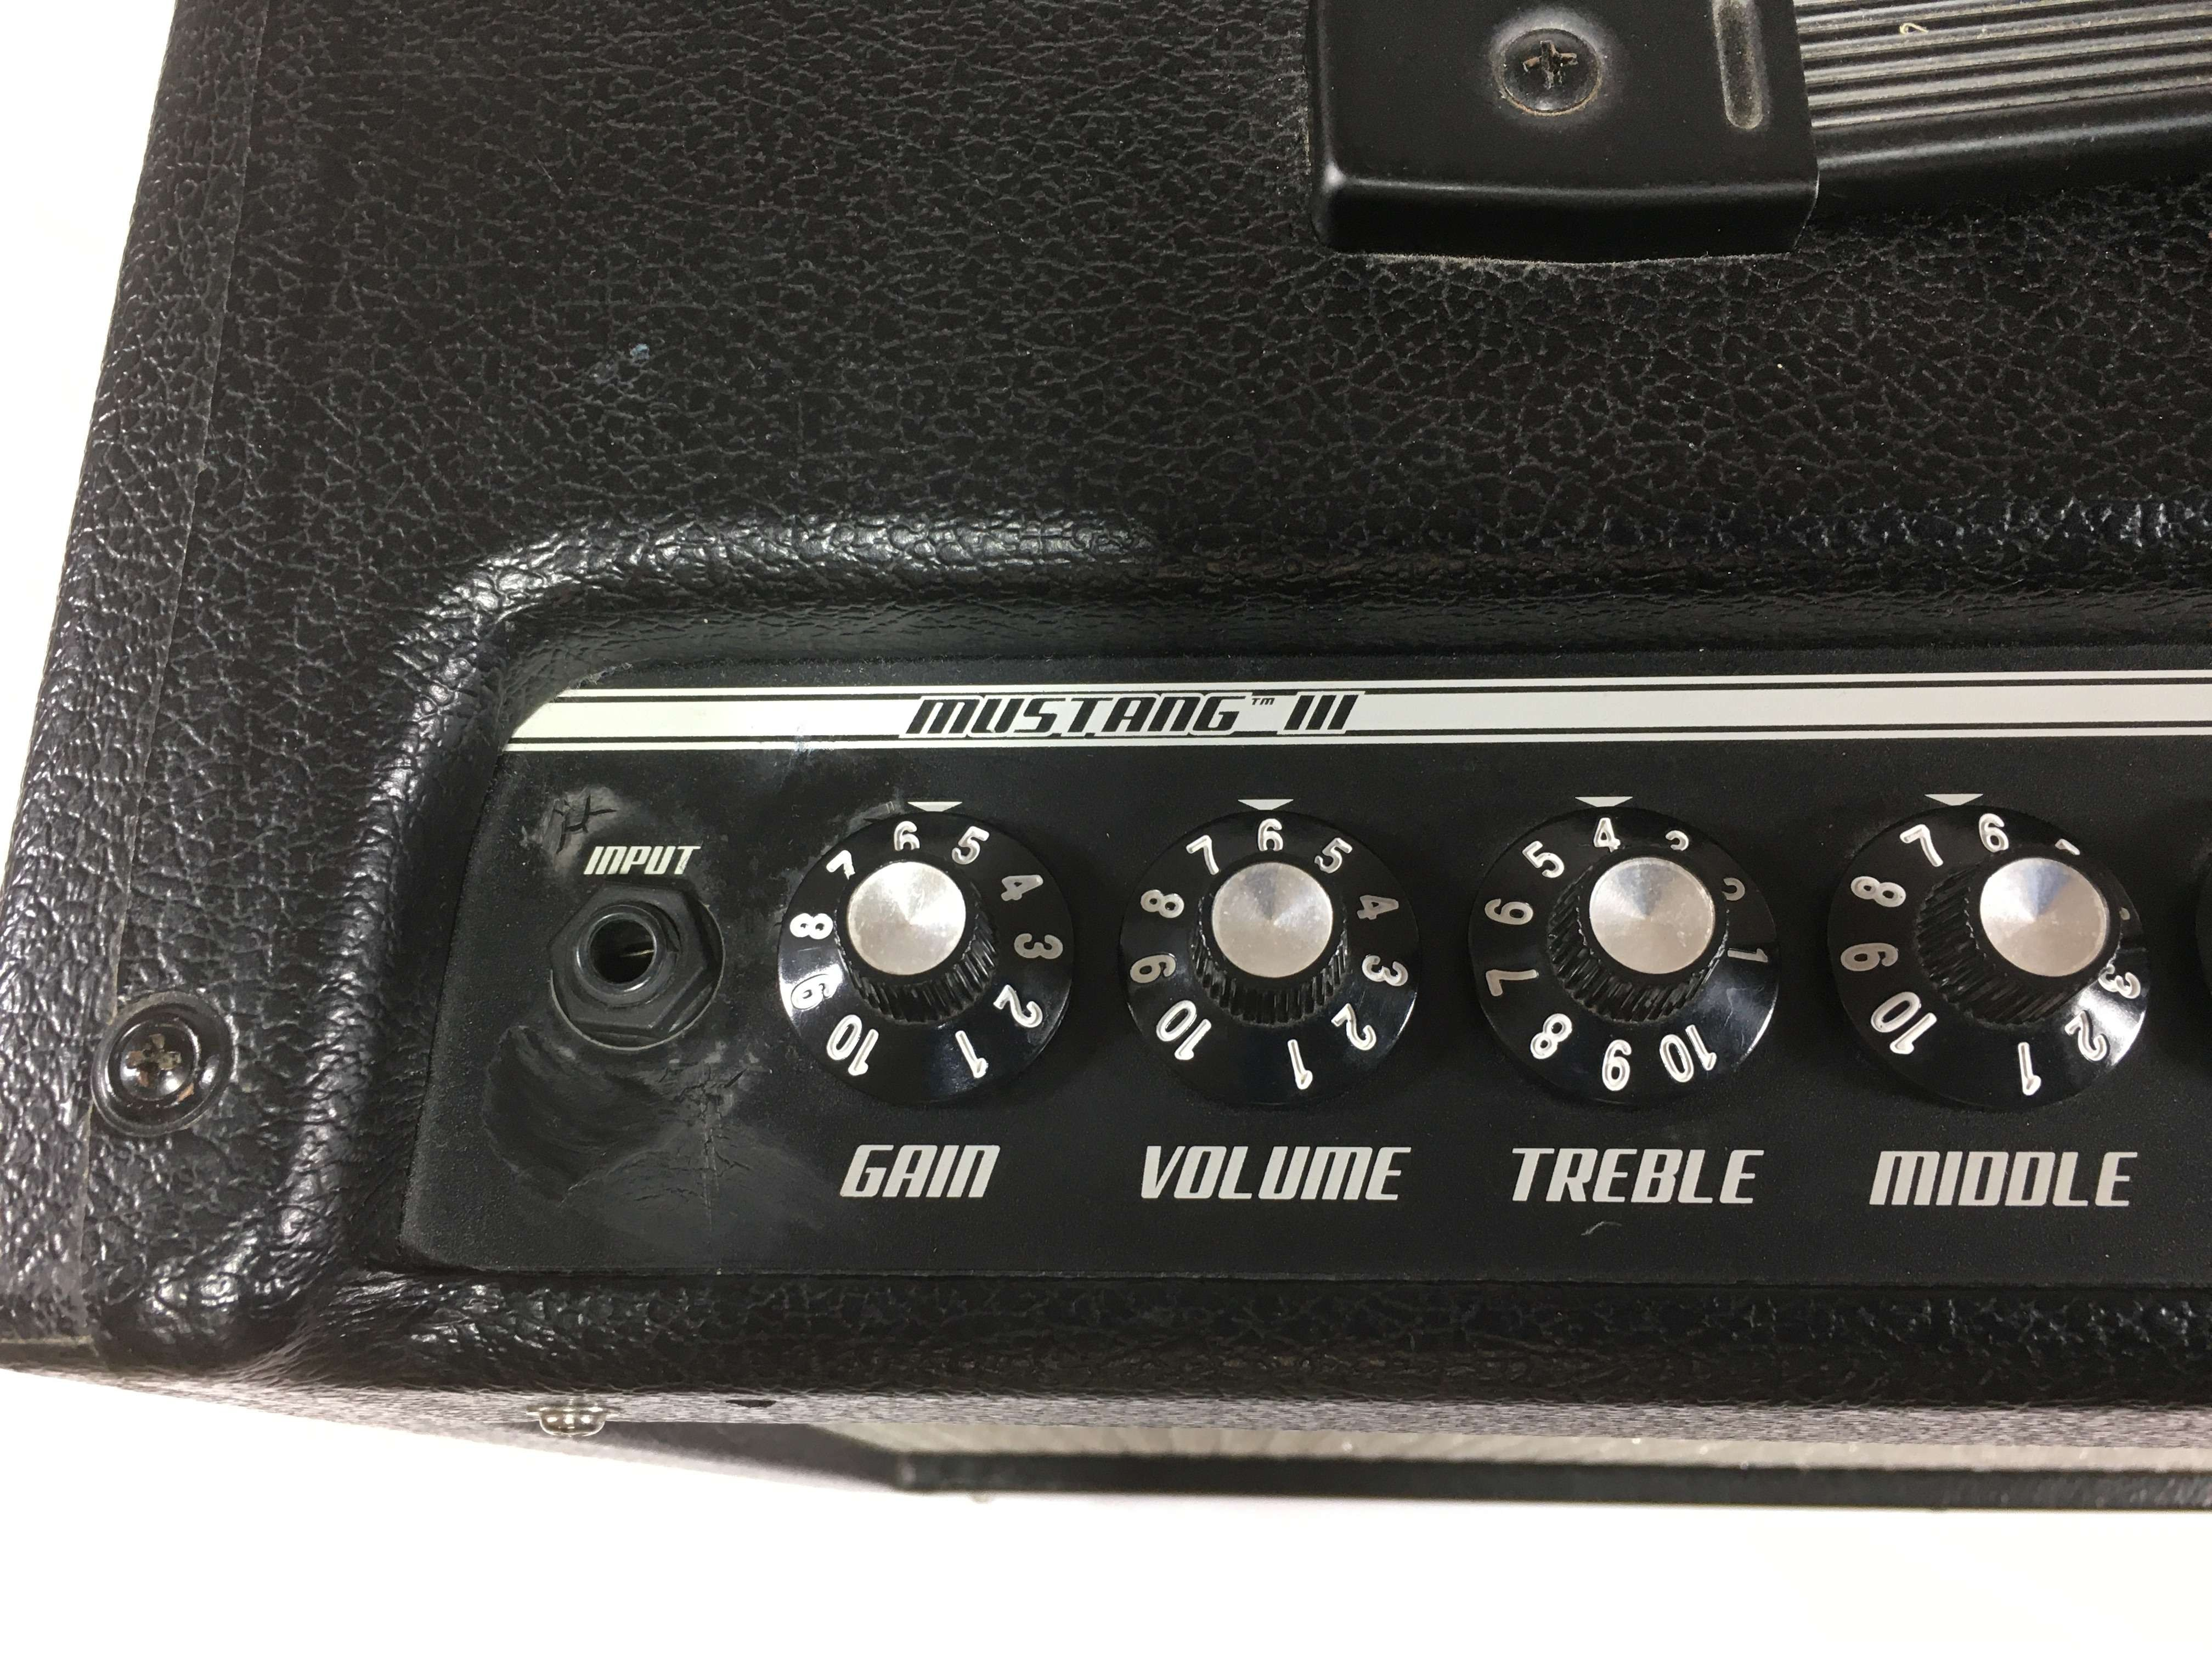 firmware mustang v2 iii as a monitor